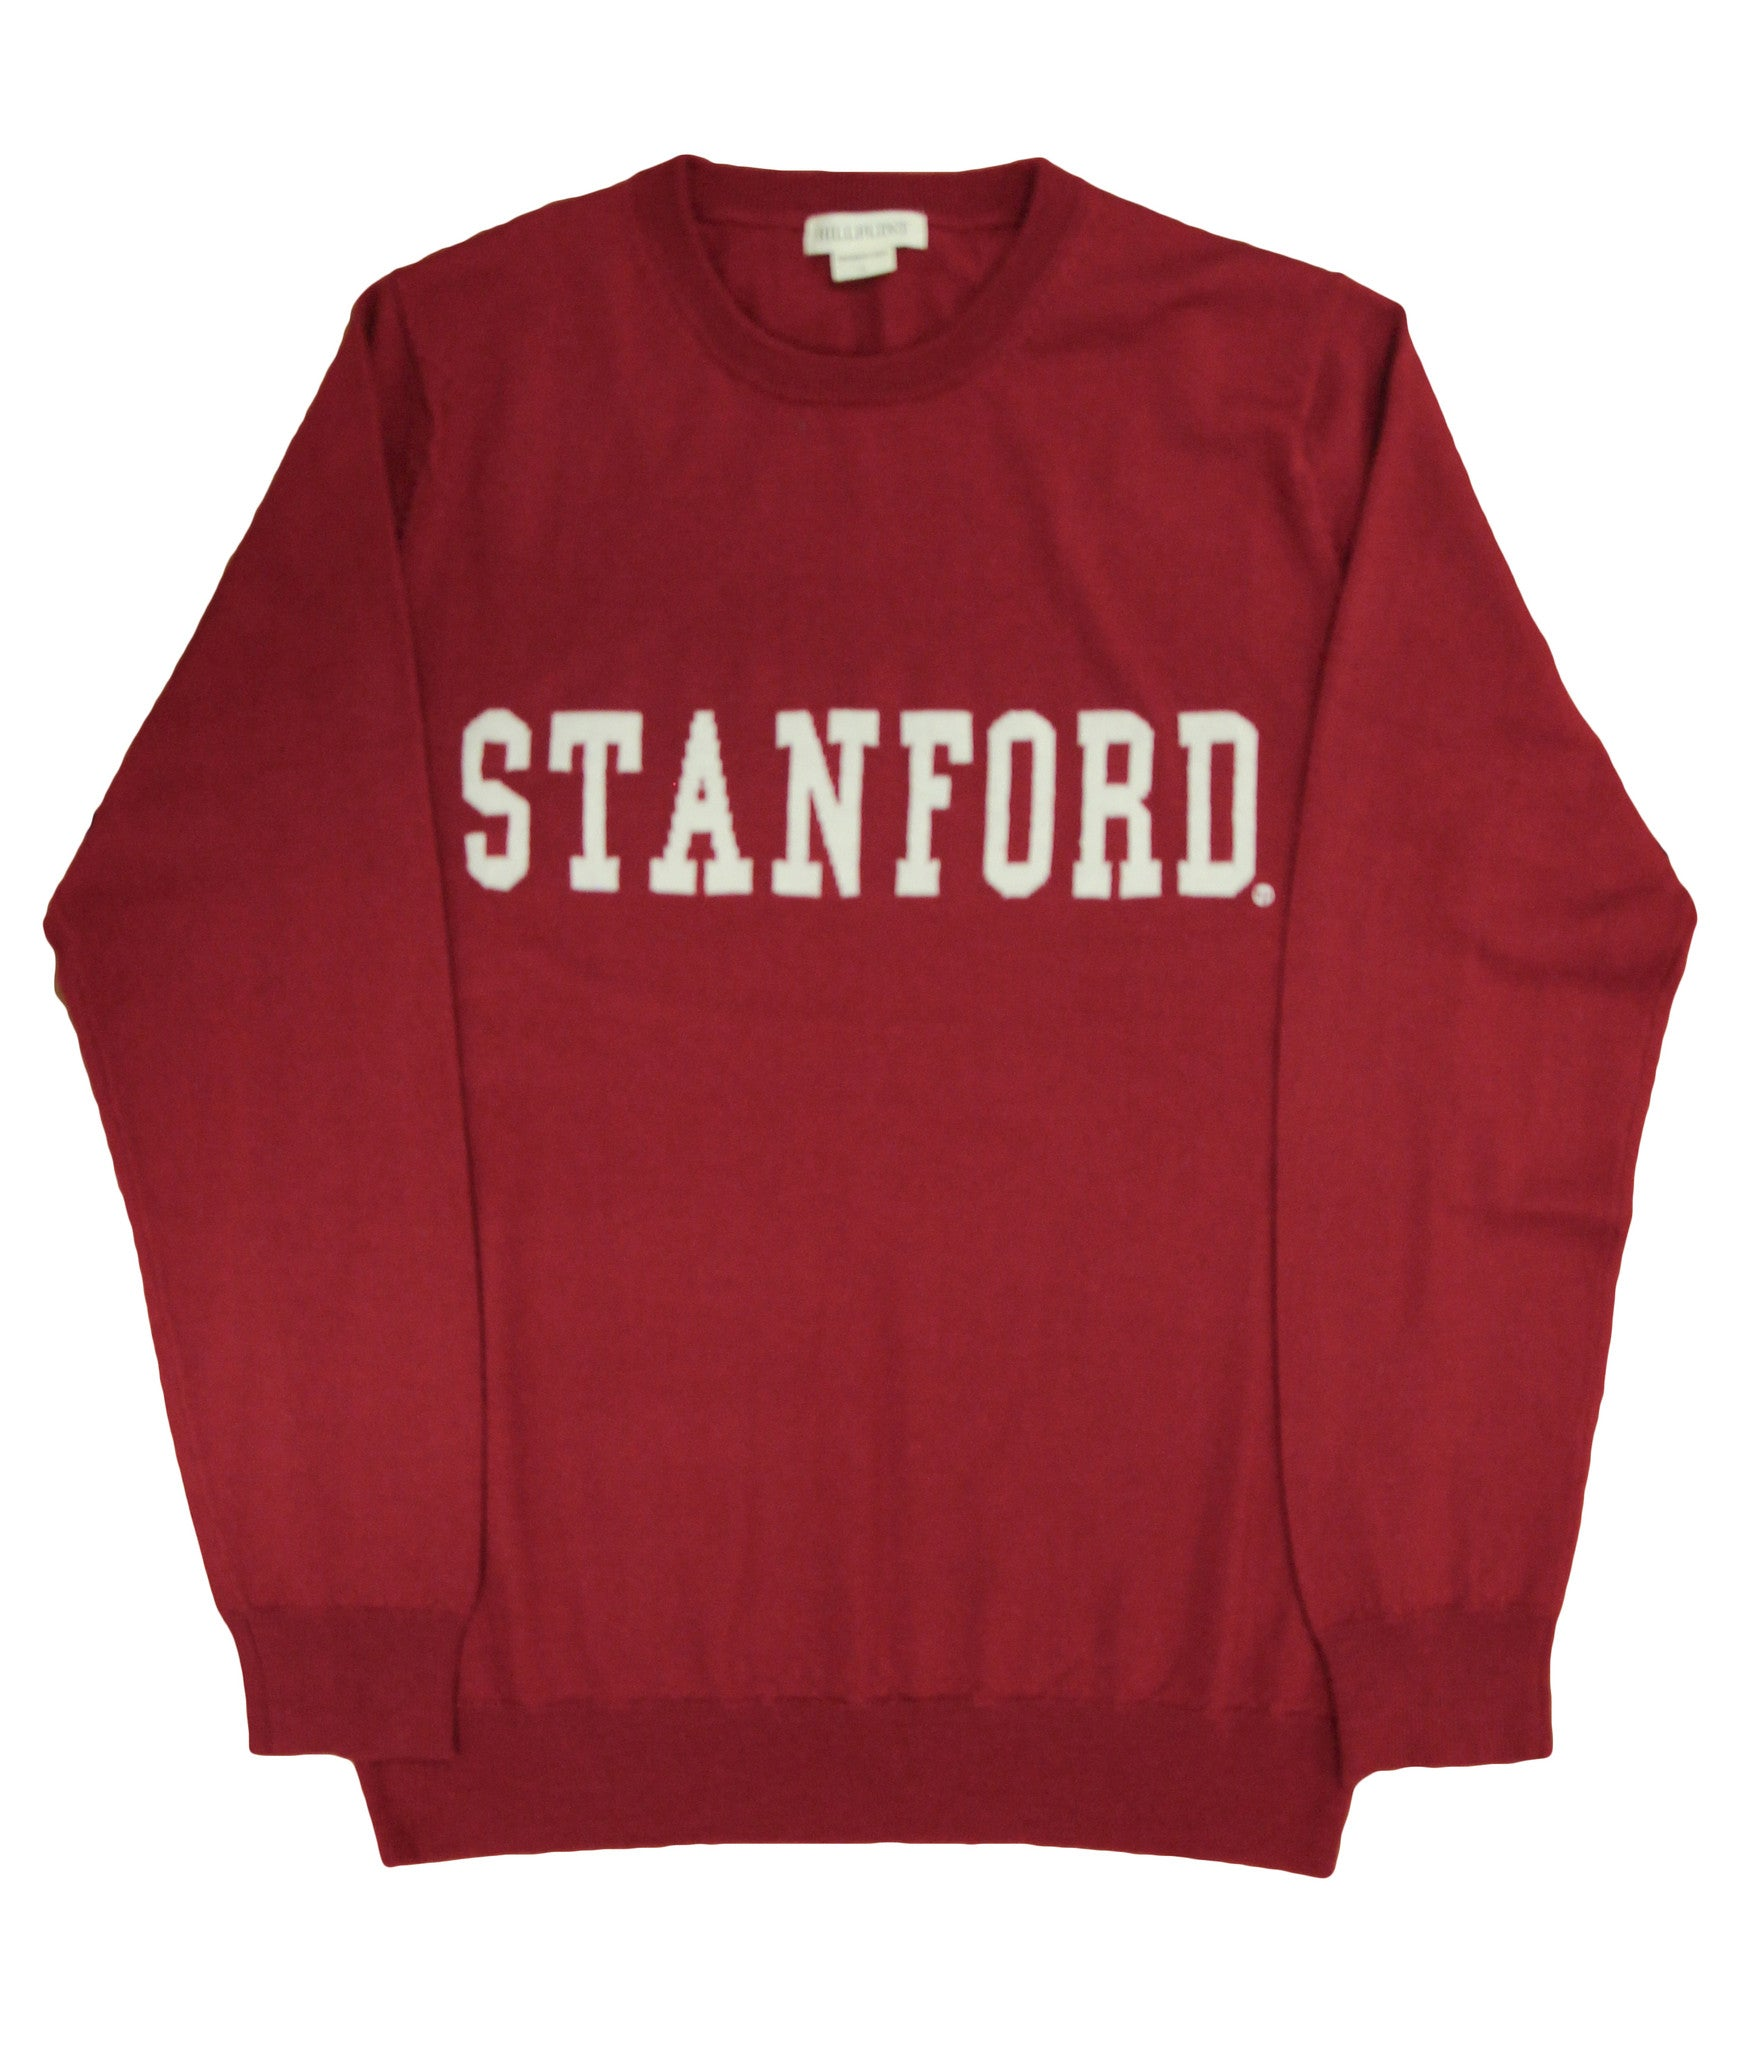 Stanford Merino Wool Sweater